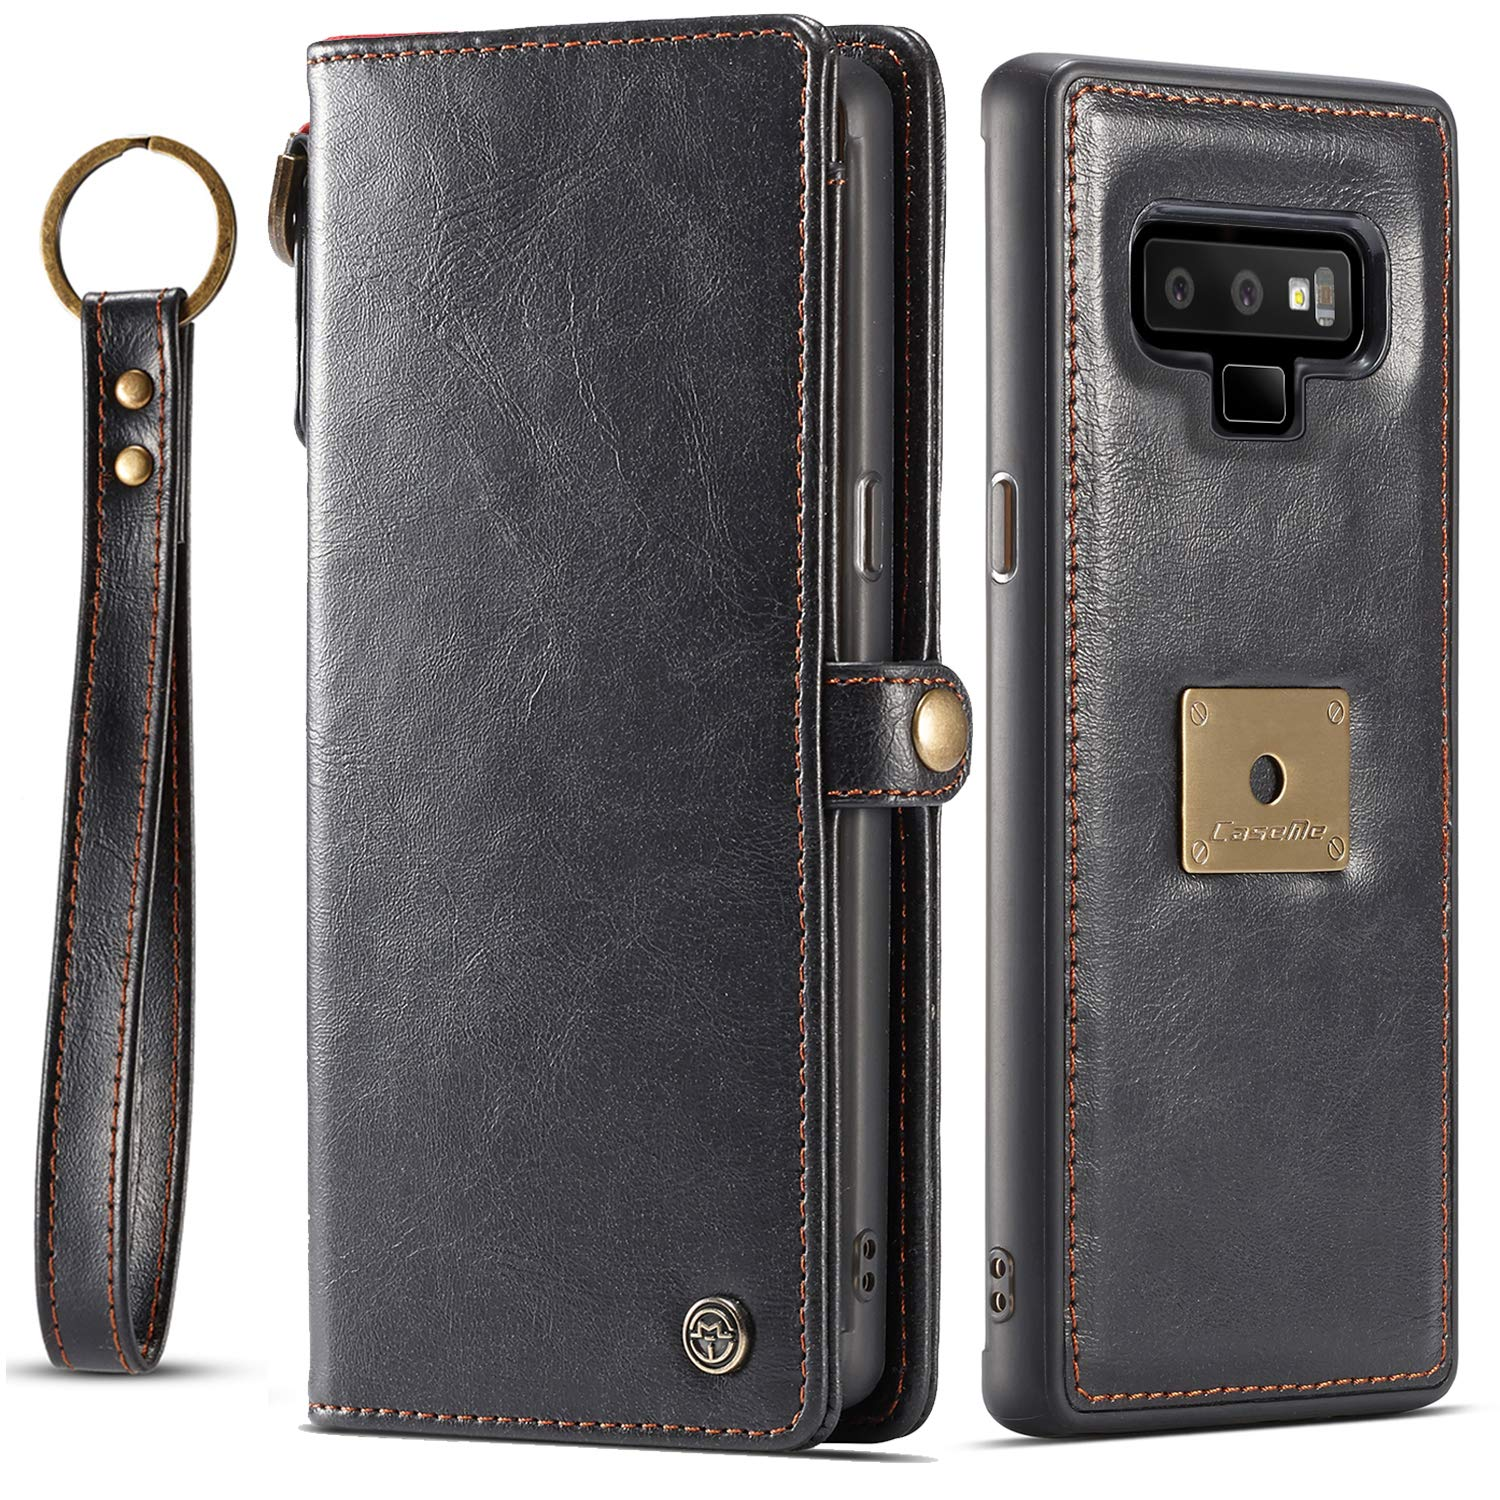 Galaxy Note 9 Case, Samsung Note 9 Case XRPow Detachable Magnetic Leather Wallet Folio Flip Card Slots Removable Slim Cover for Samsung Galaxy Note 9 with Wrist Strap Black by XRPow